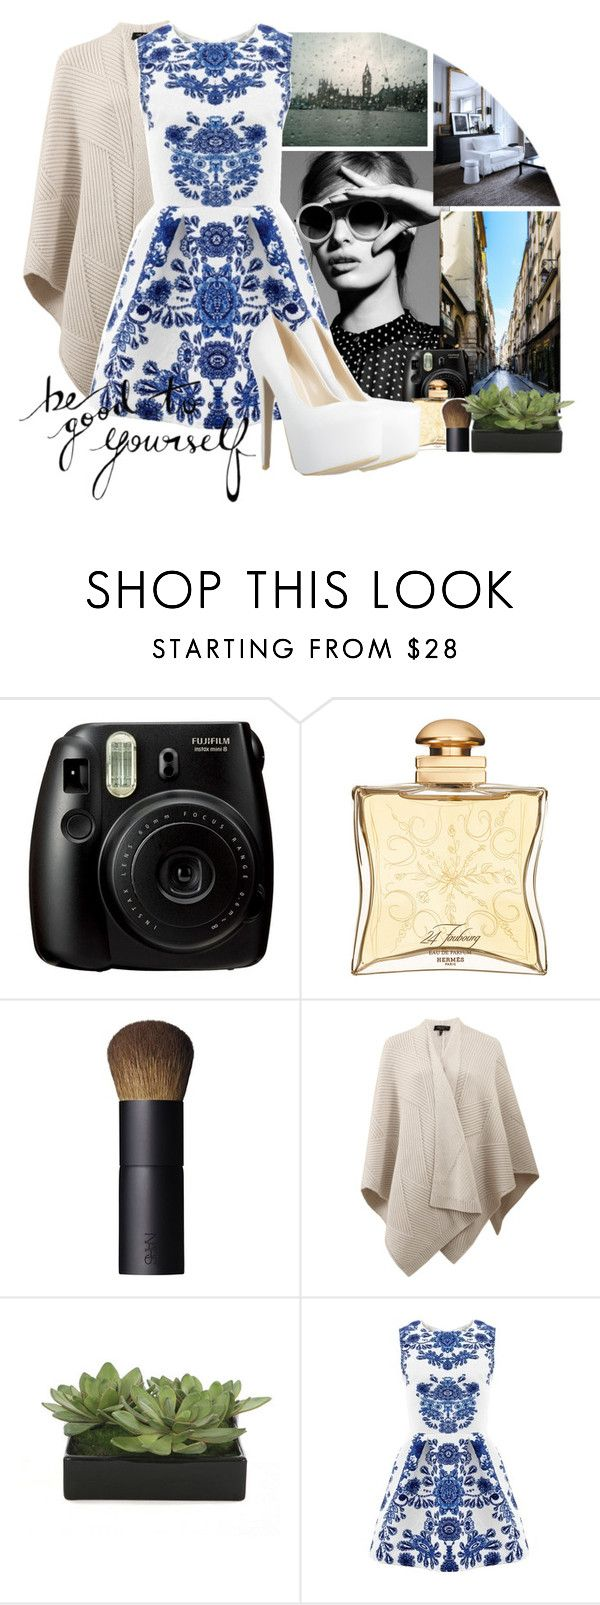 """Totallits"" by genaa ❤ liked on Polyvore featuring Hermès, NARS Cosmetics, rag & bone and Lux-Art Silks"